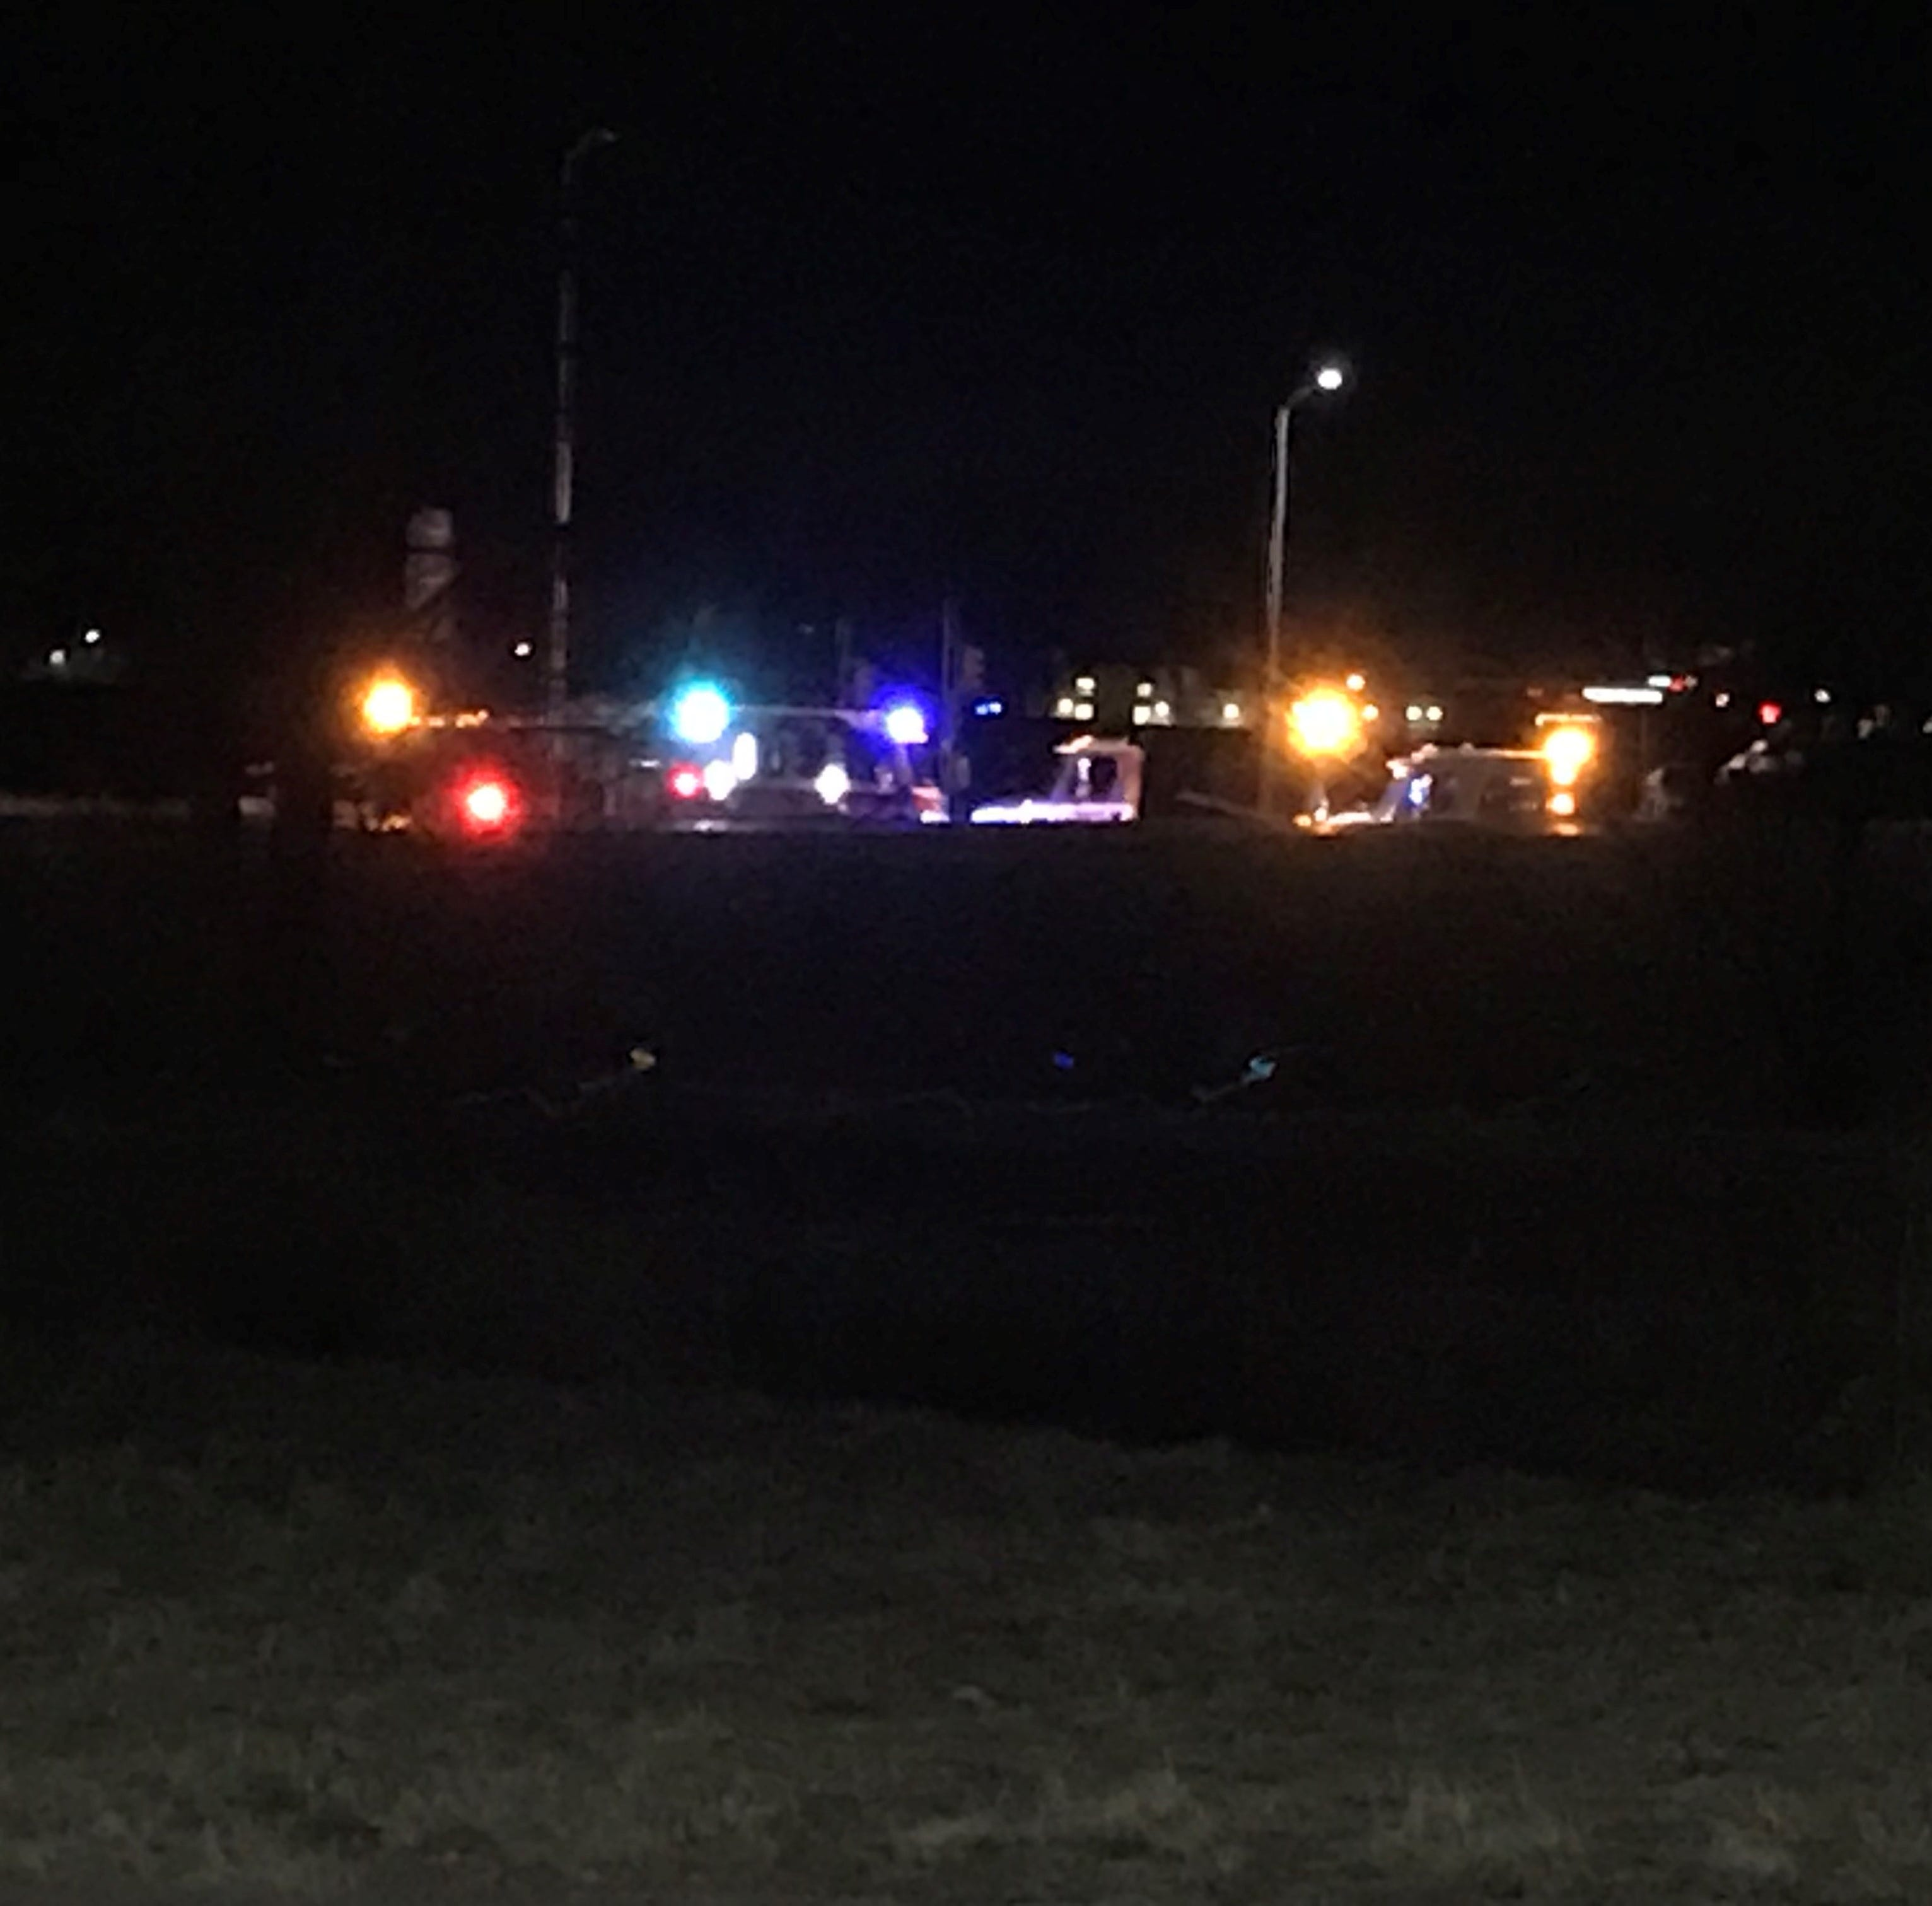 I-25 reopens after crash involving 'significant' injuries